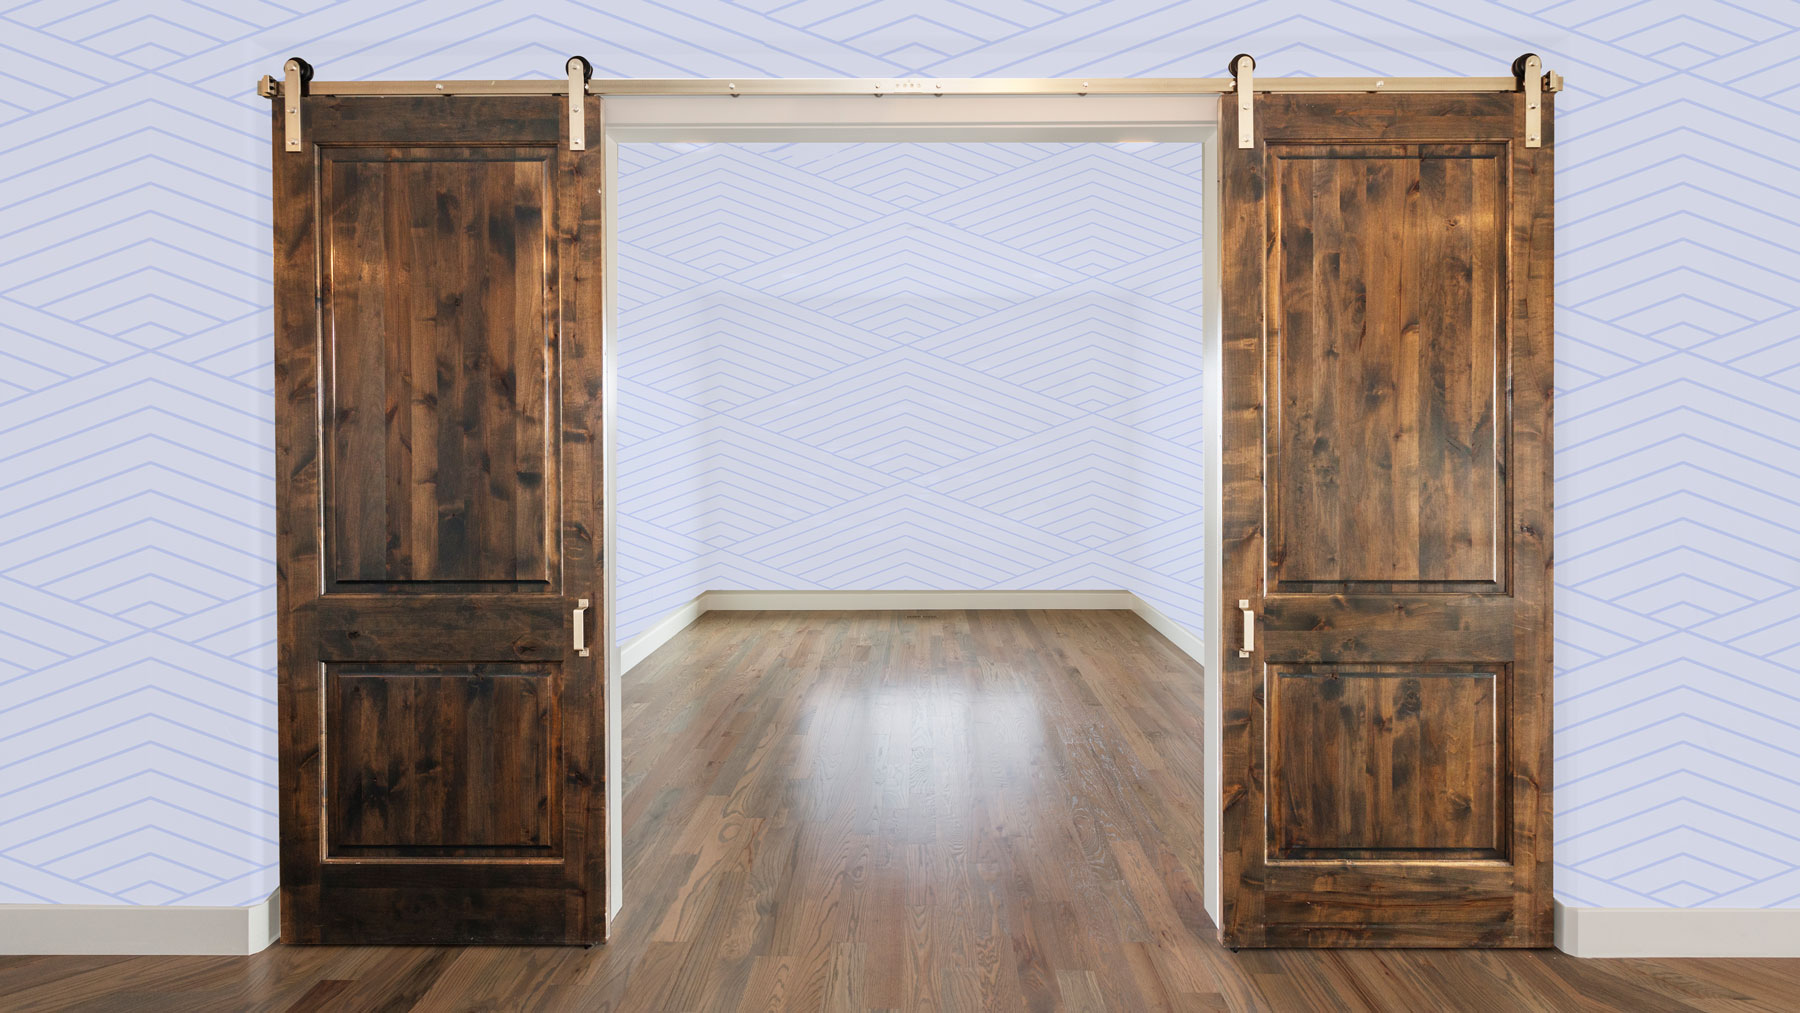 The Important Things You Have to Consider Before Installing a Barn Door